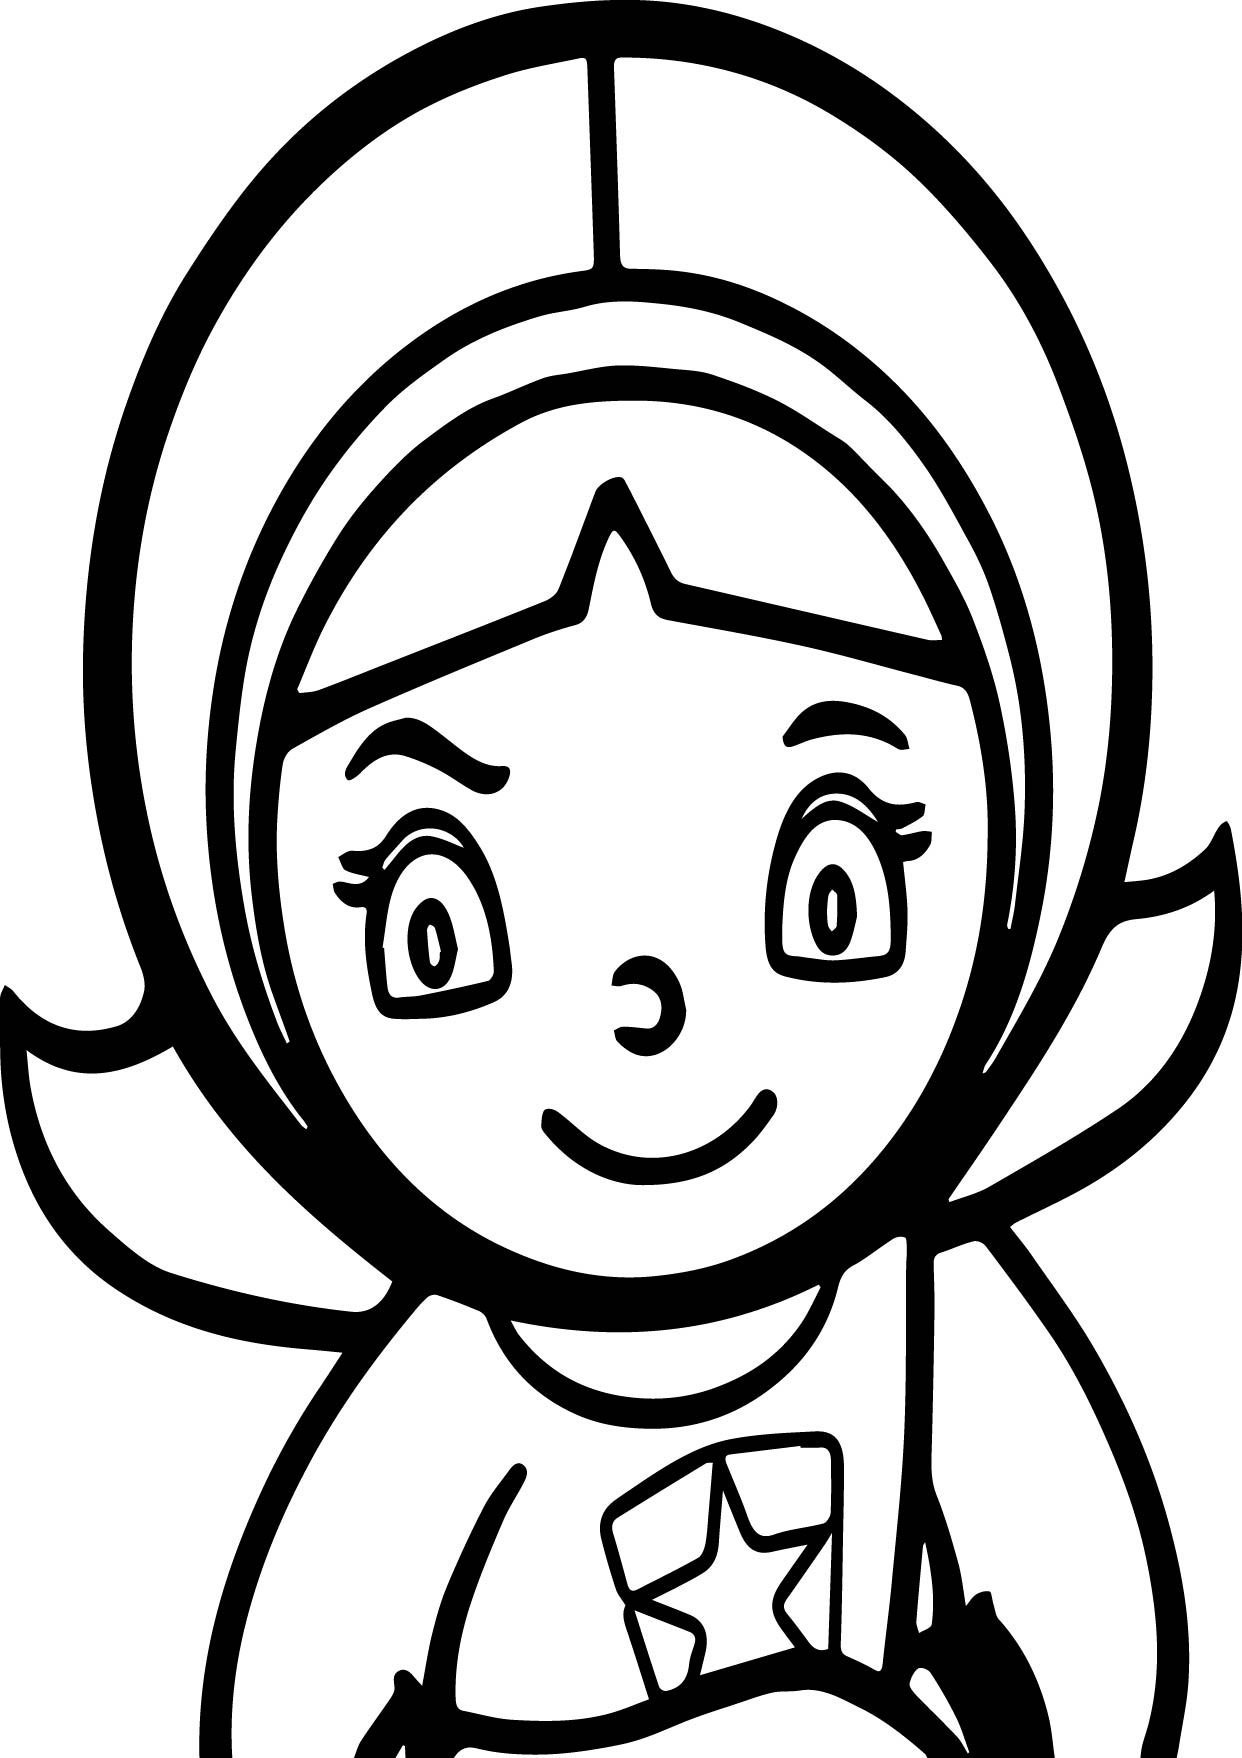 pbs coloring pages - word girl pbs kids coloring page